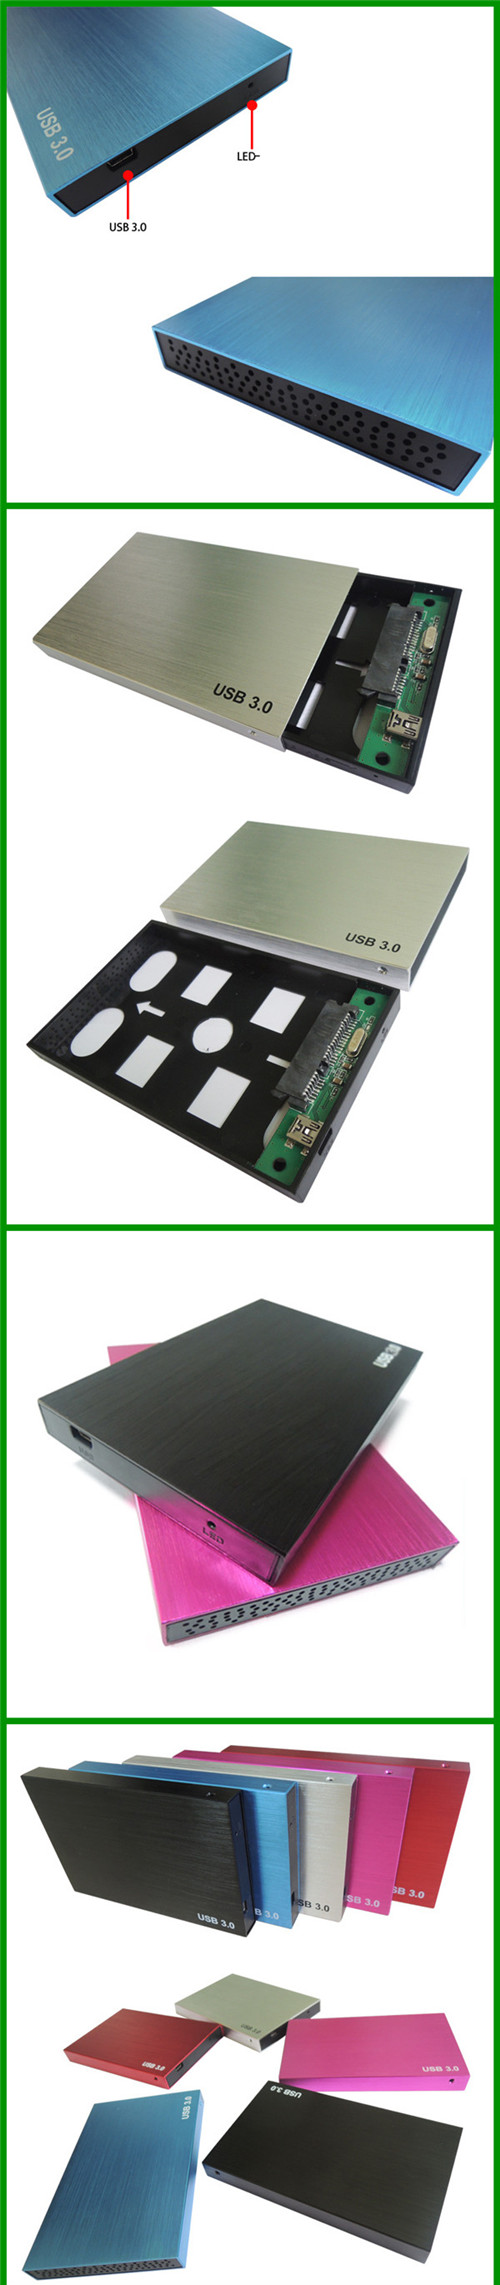 usb 3.0 hdd enclosure